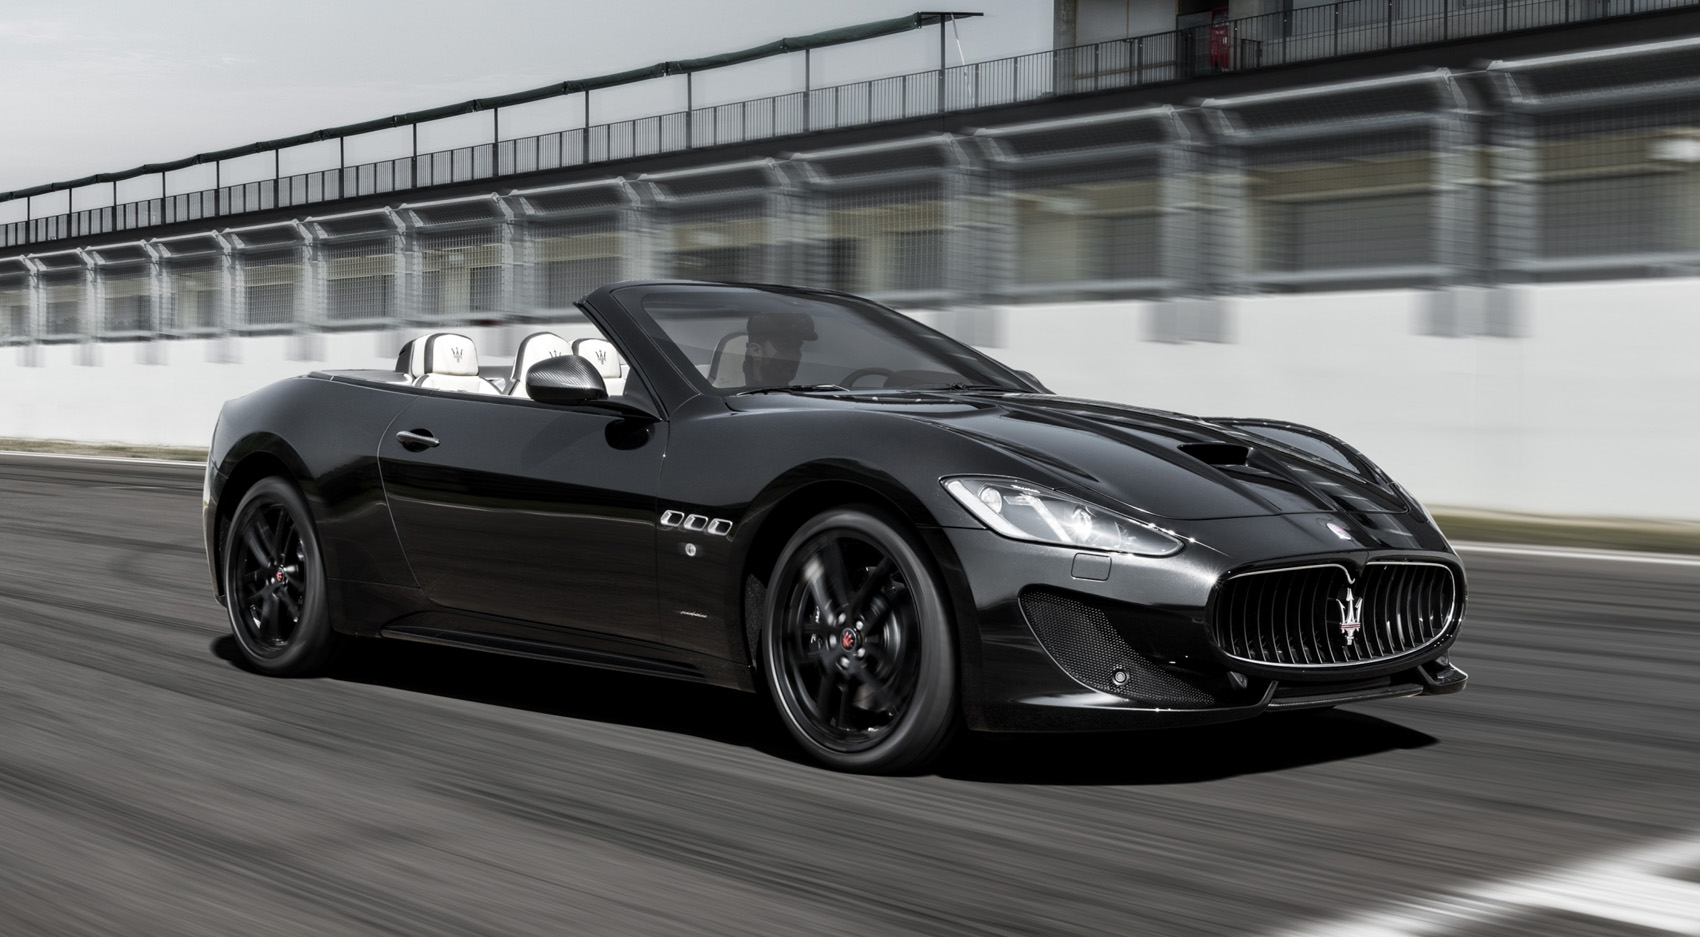 maserati grancabrio 4 7 v8 460 mc voiture maroc. Black Bedroom Furniture Sets. Home Design Ideas